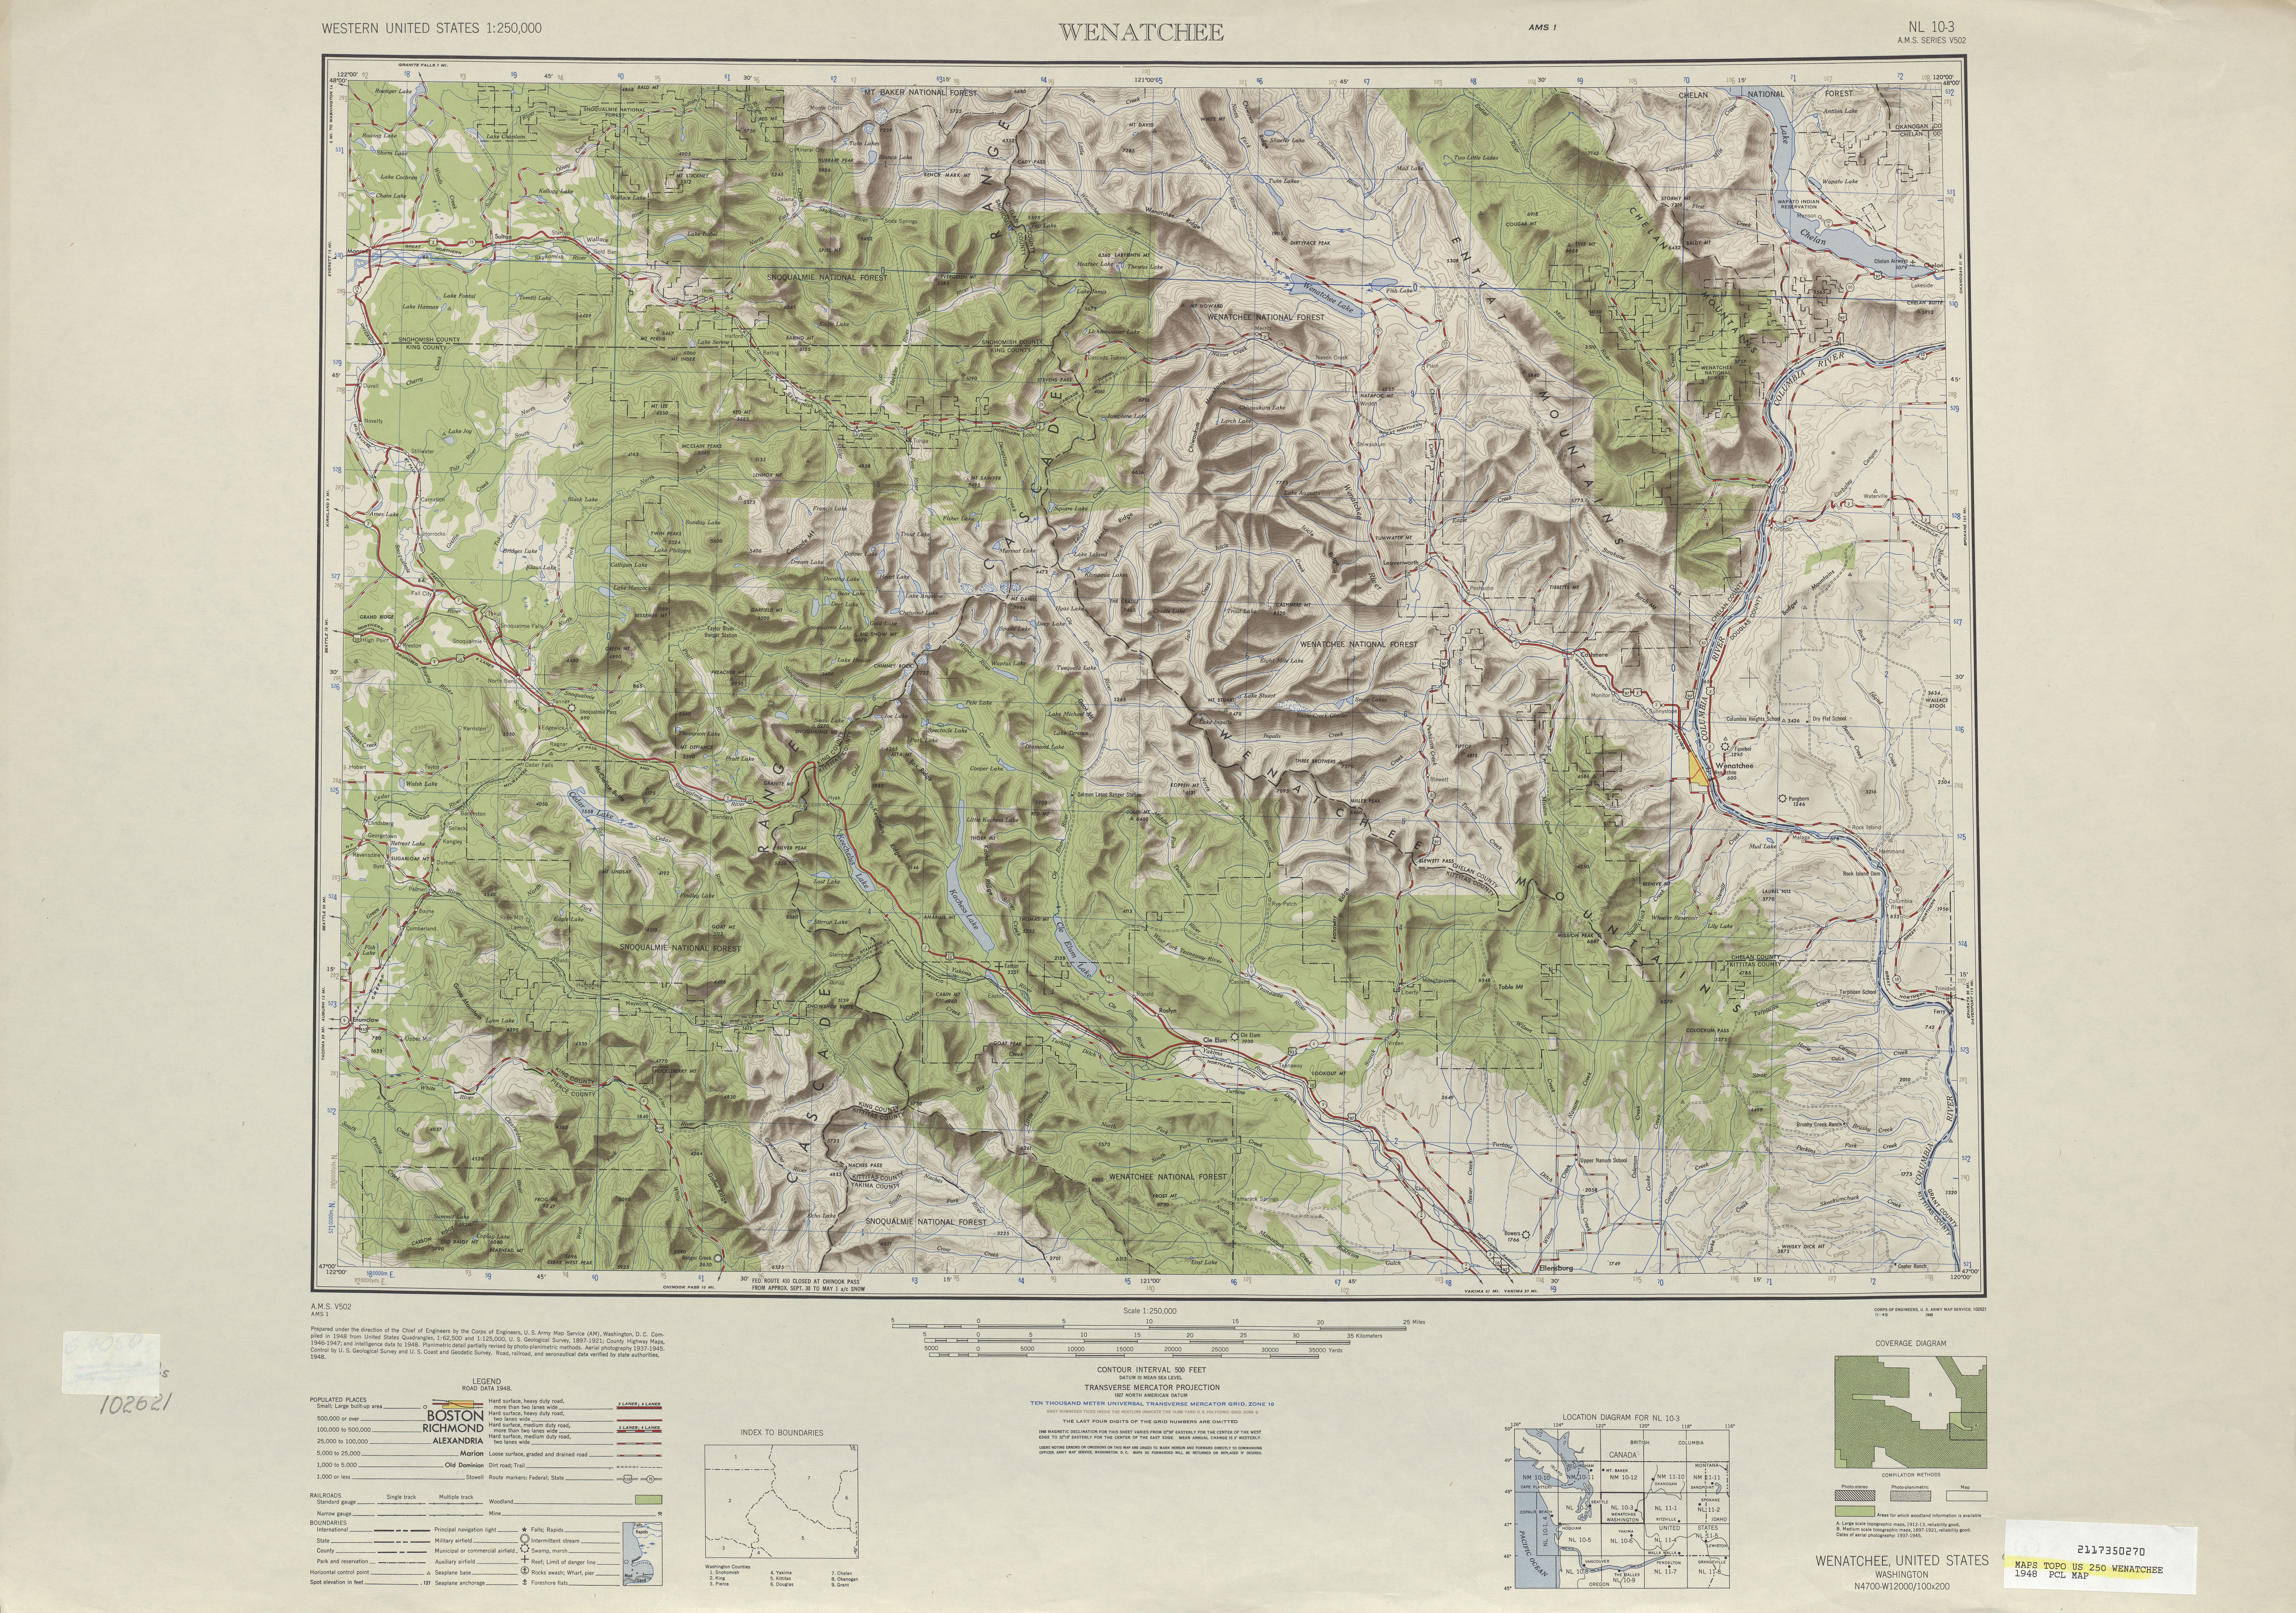 Wenatchee Shaded Relief Map Sheet, United States 1948